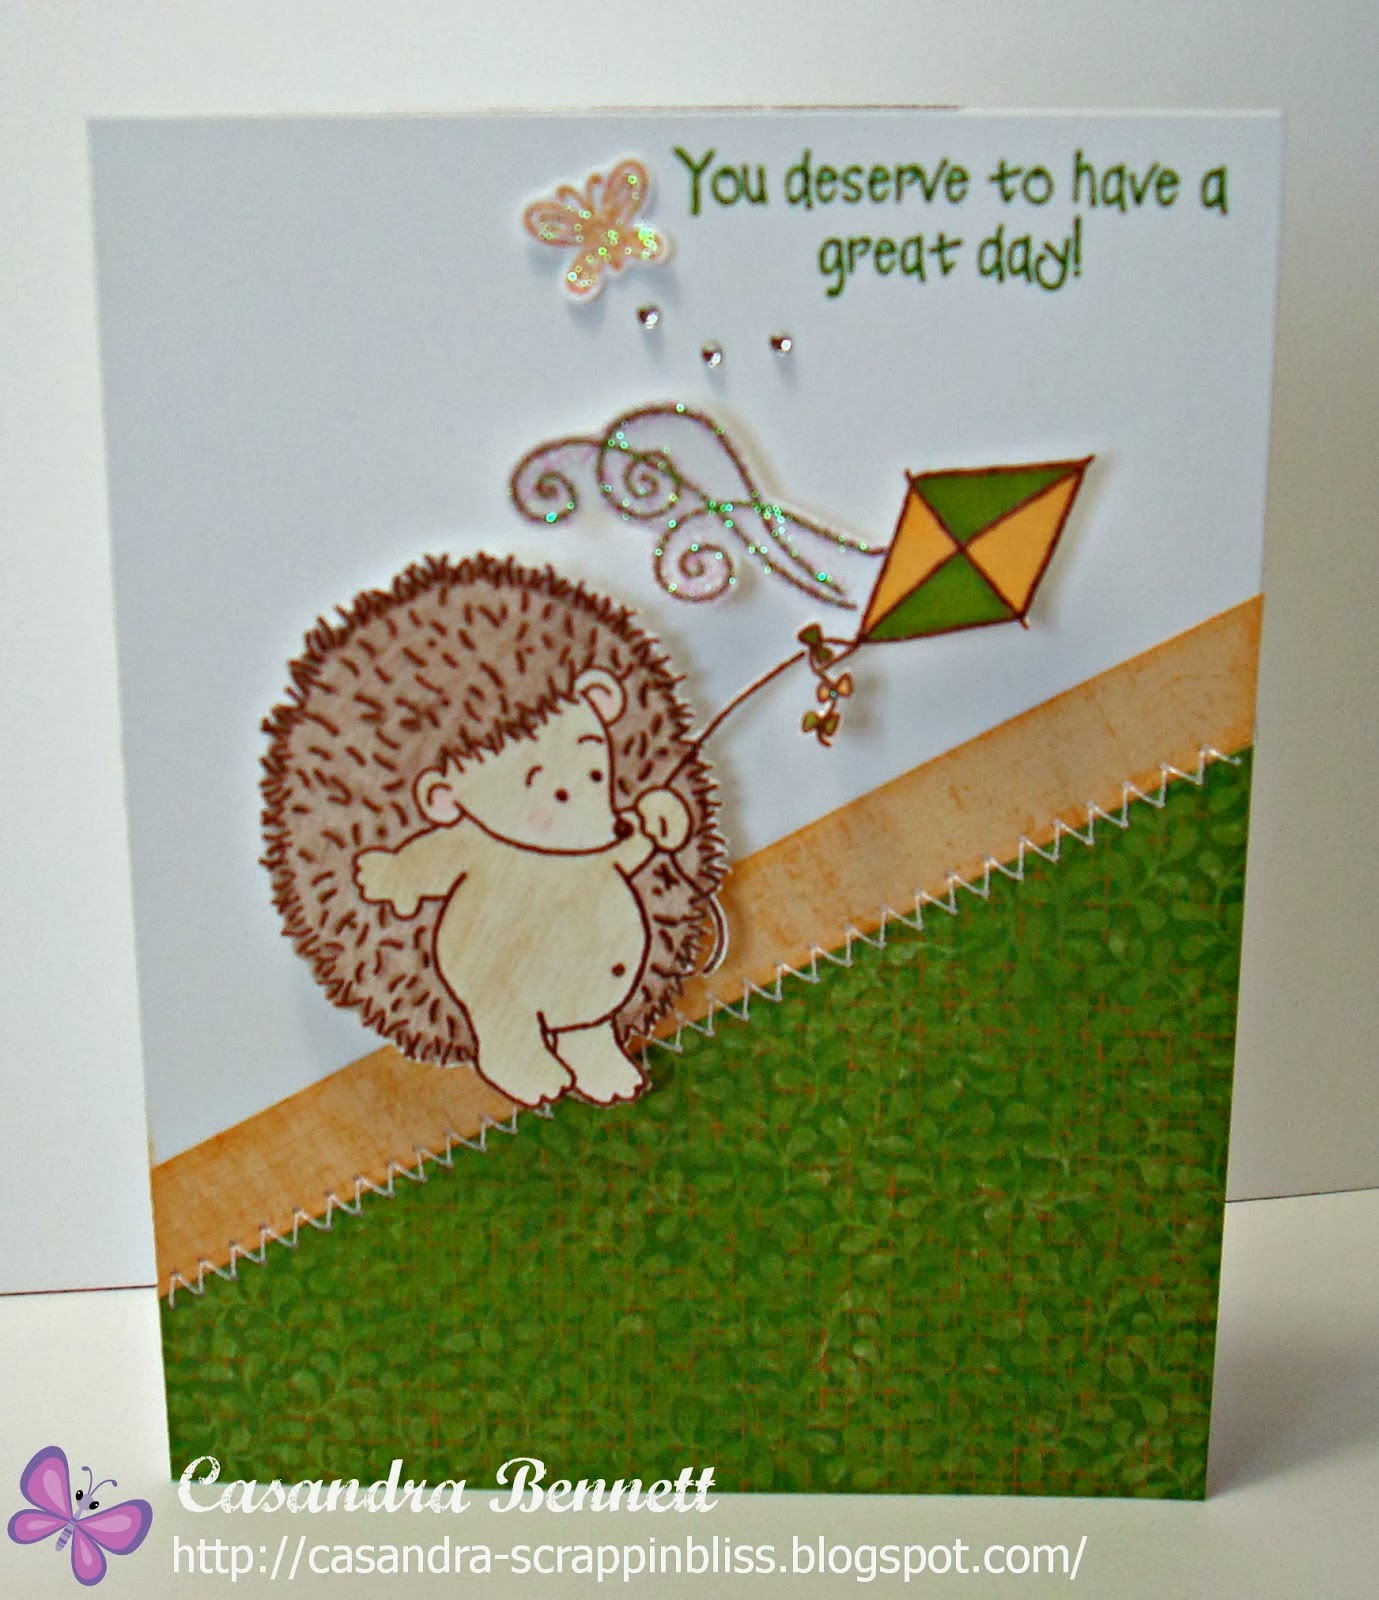 http://casandra-scrappinbliss.blogspot.com/2014/02/case-study-179-happy-forever-card.html